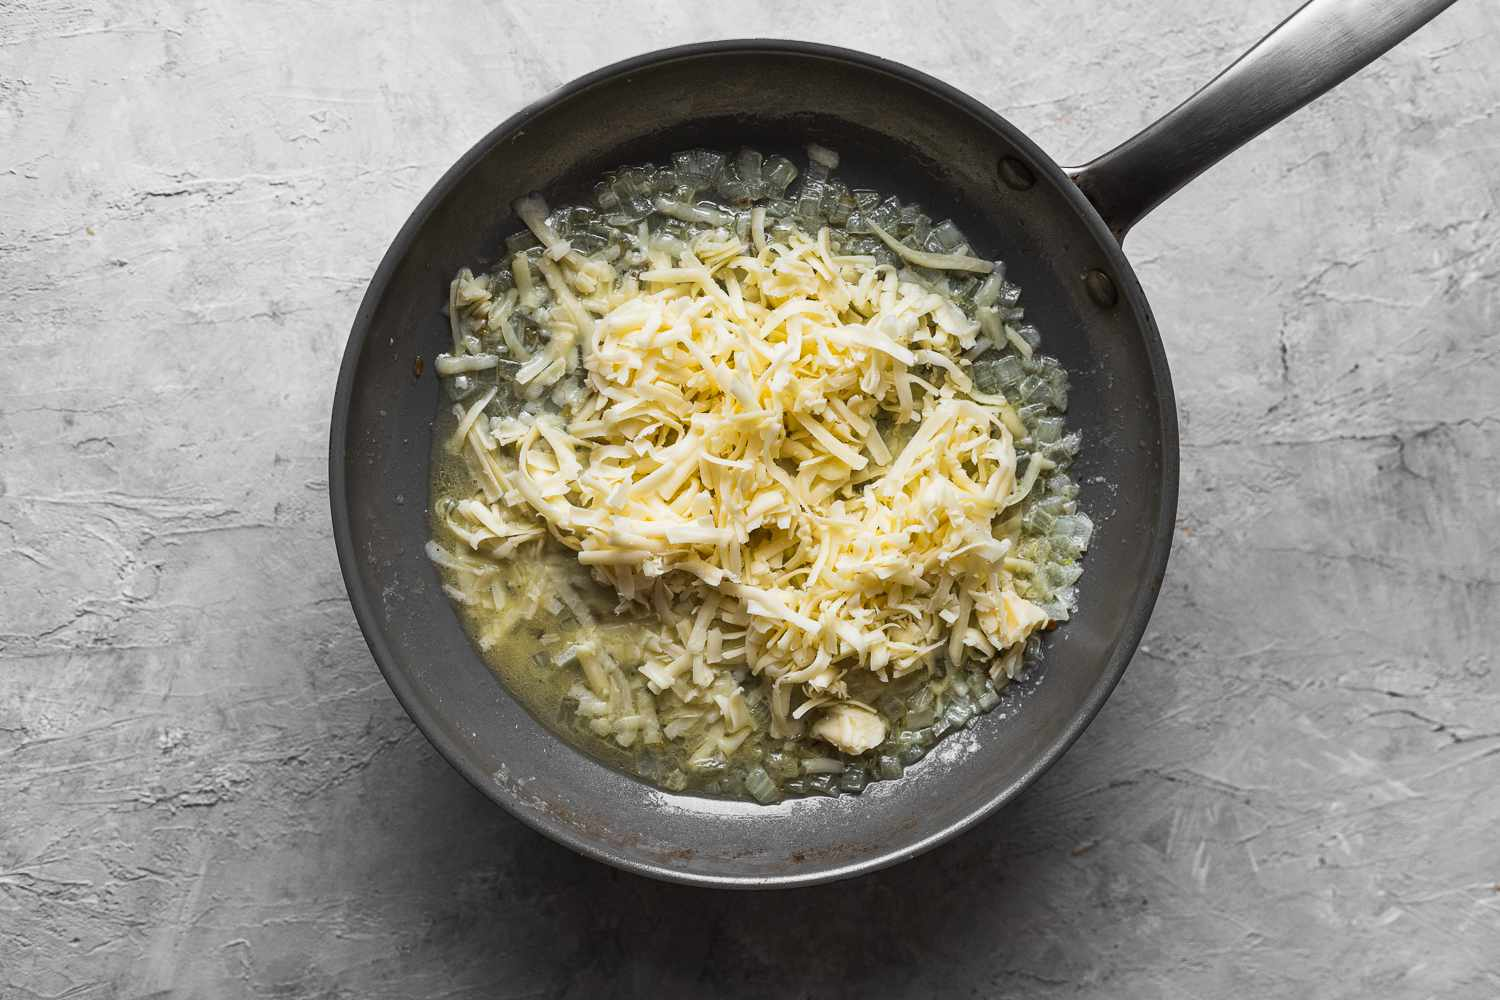 water and cheddar with onions in a pan